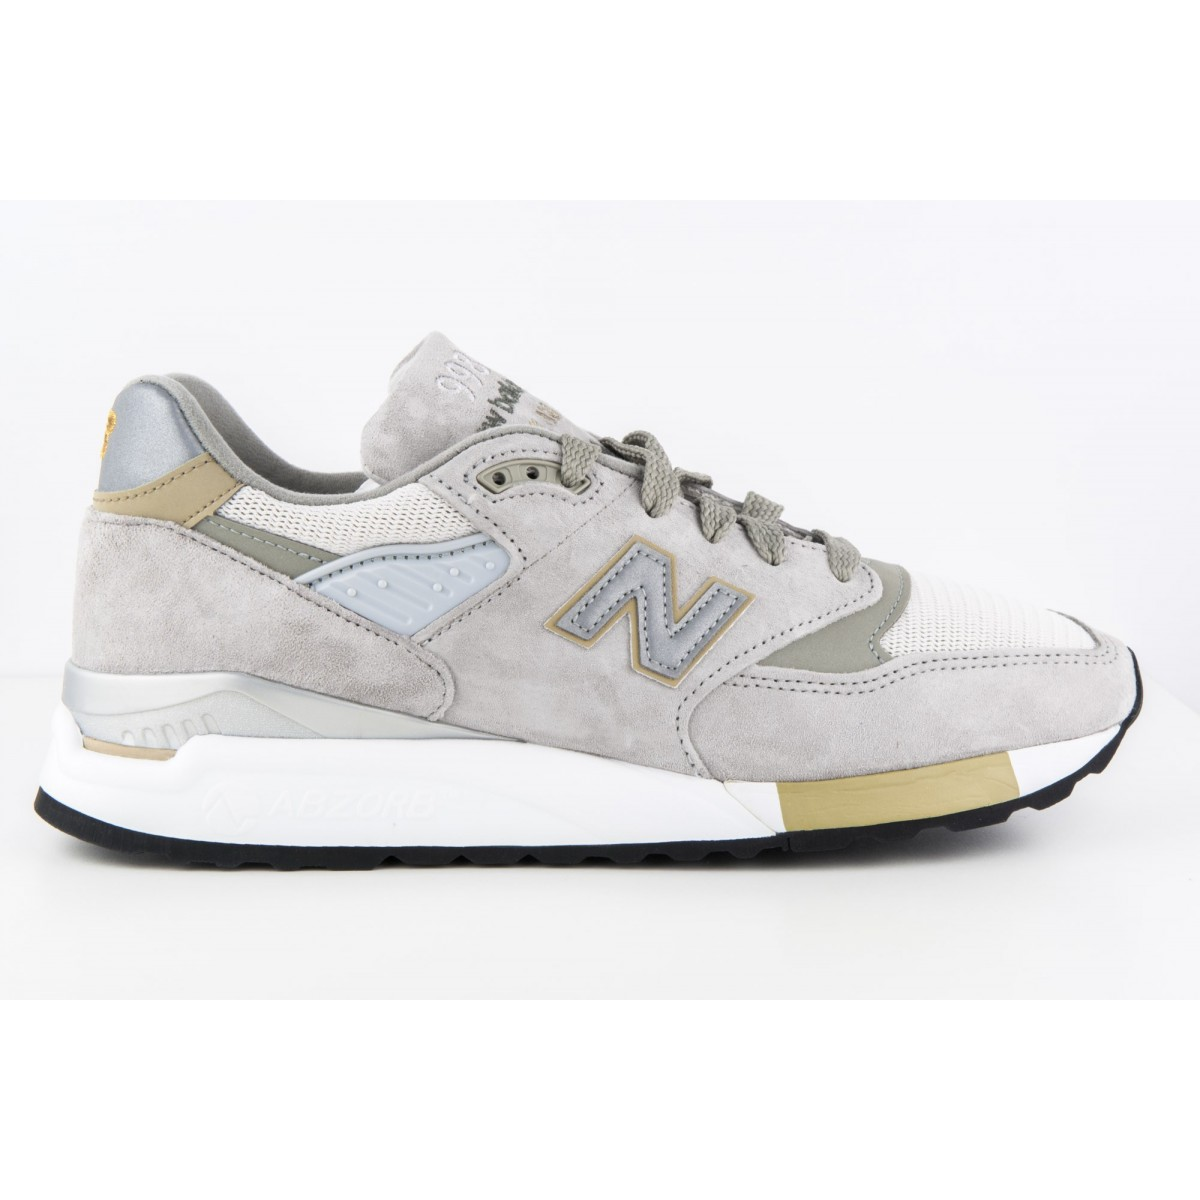 Scarpa New Balance - M998 Cel Made In Usa Limited Edition